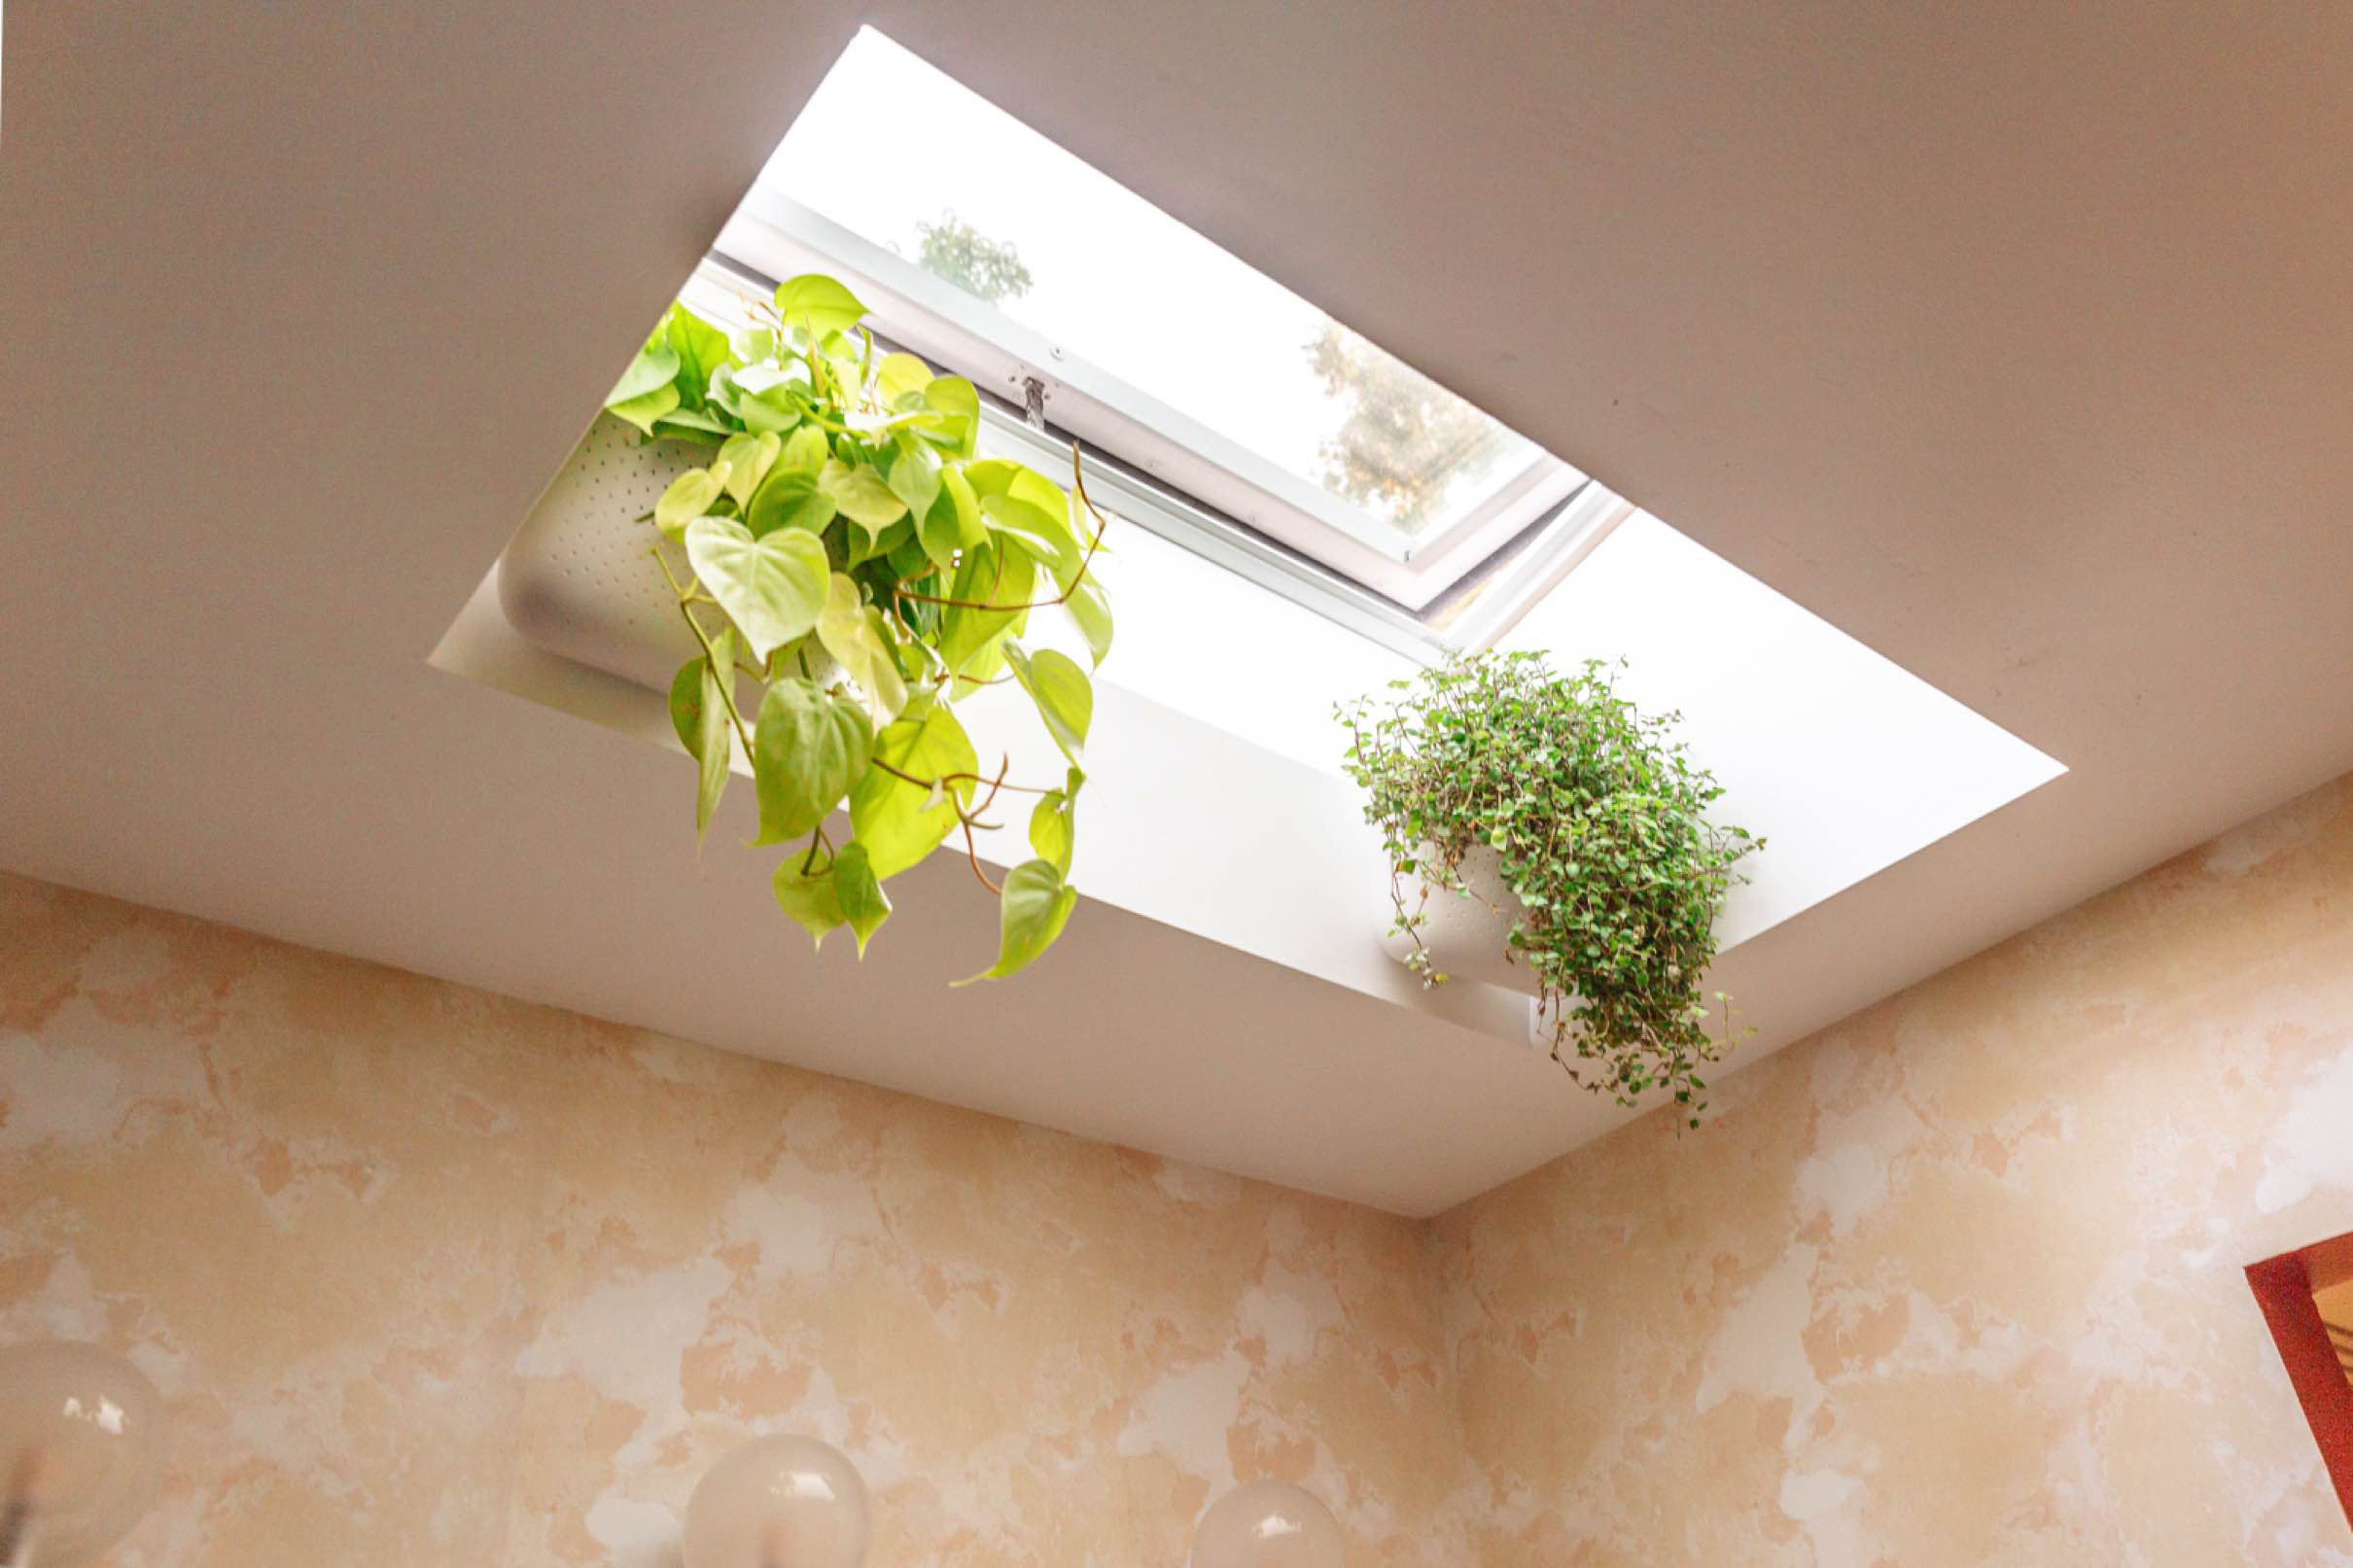 Studio plumb skylight with plantstmb